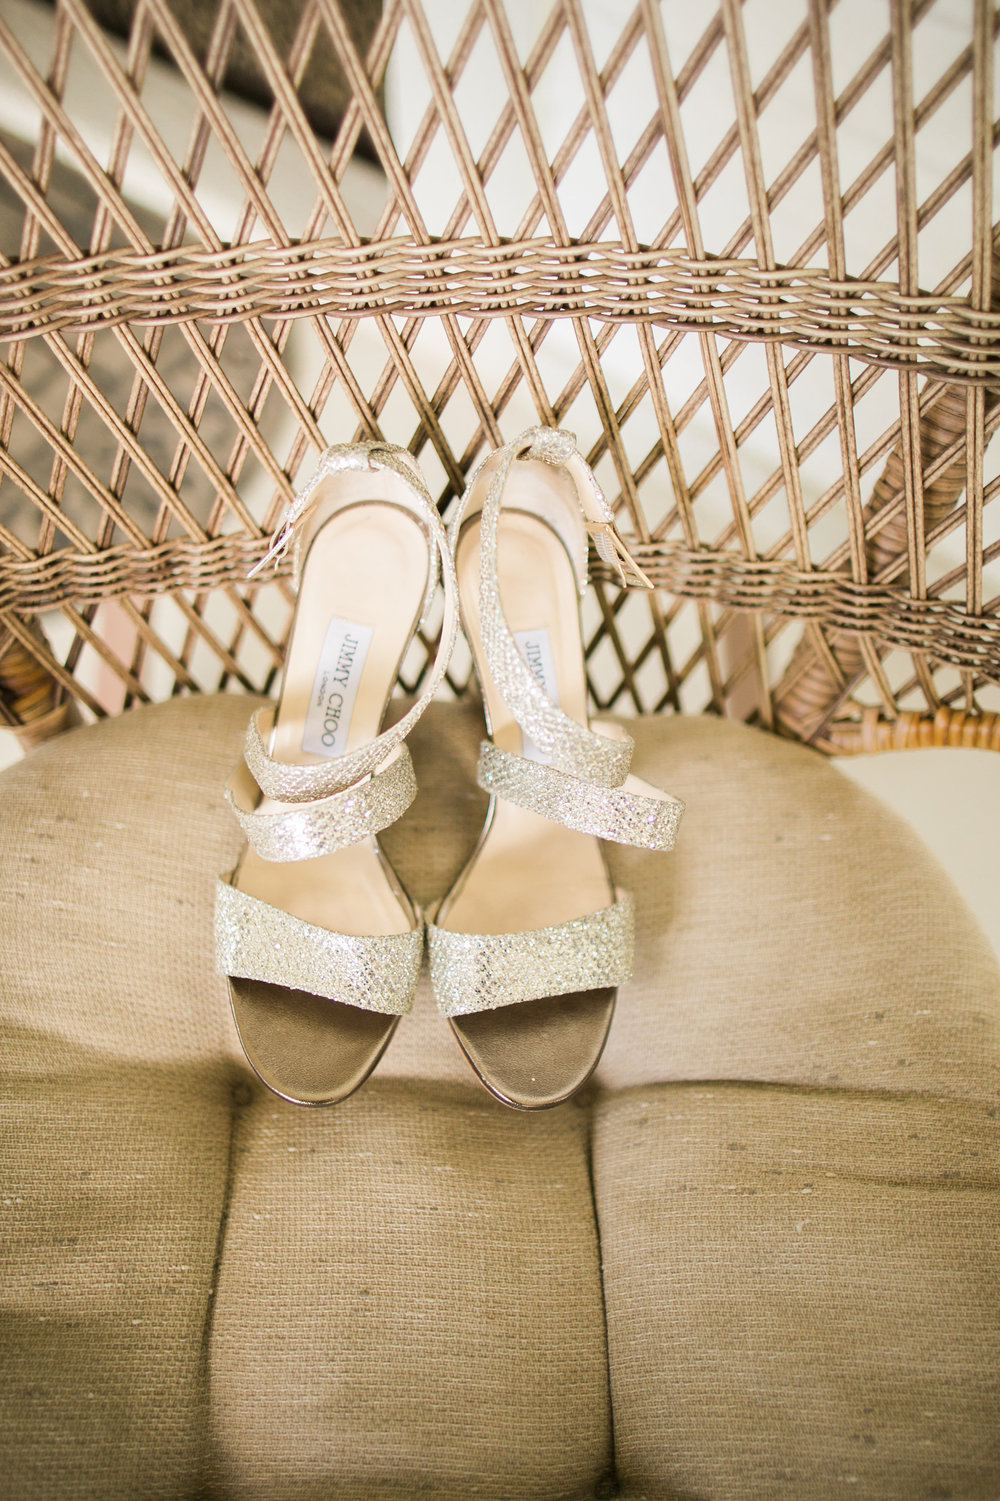 Jimmy Choo wedding sandals | Joanna Tano Photography